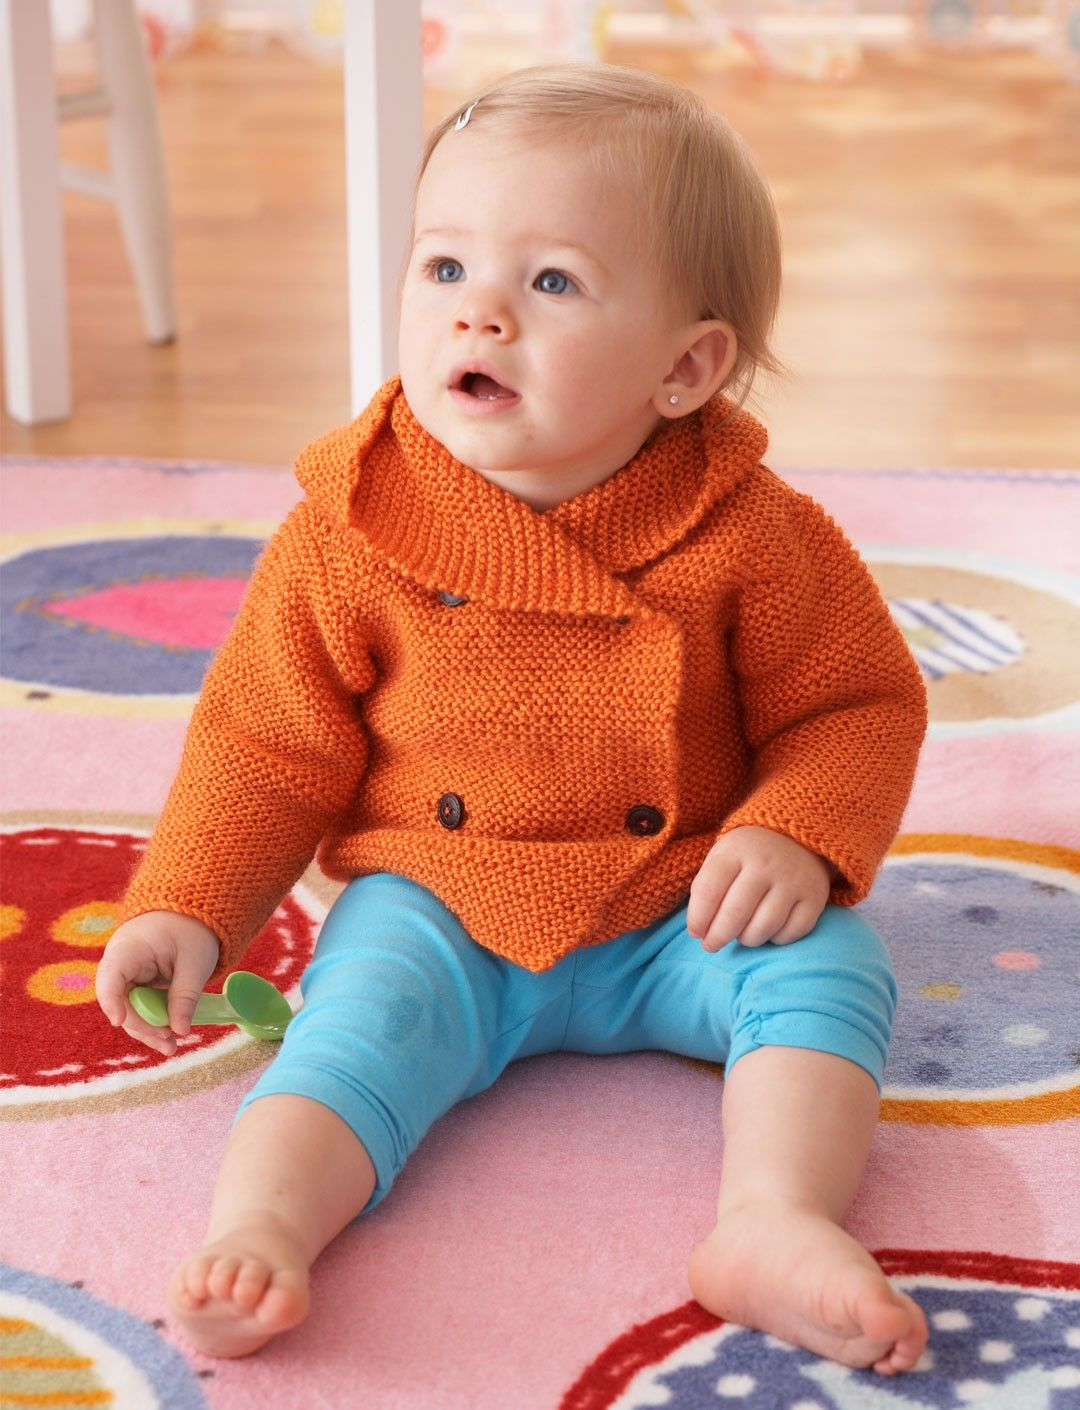 f2aa53620e39 Garter Stitch Hooded Jacket - A great pattern for a buttoned and ...